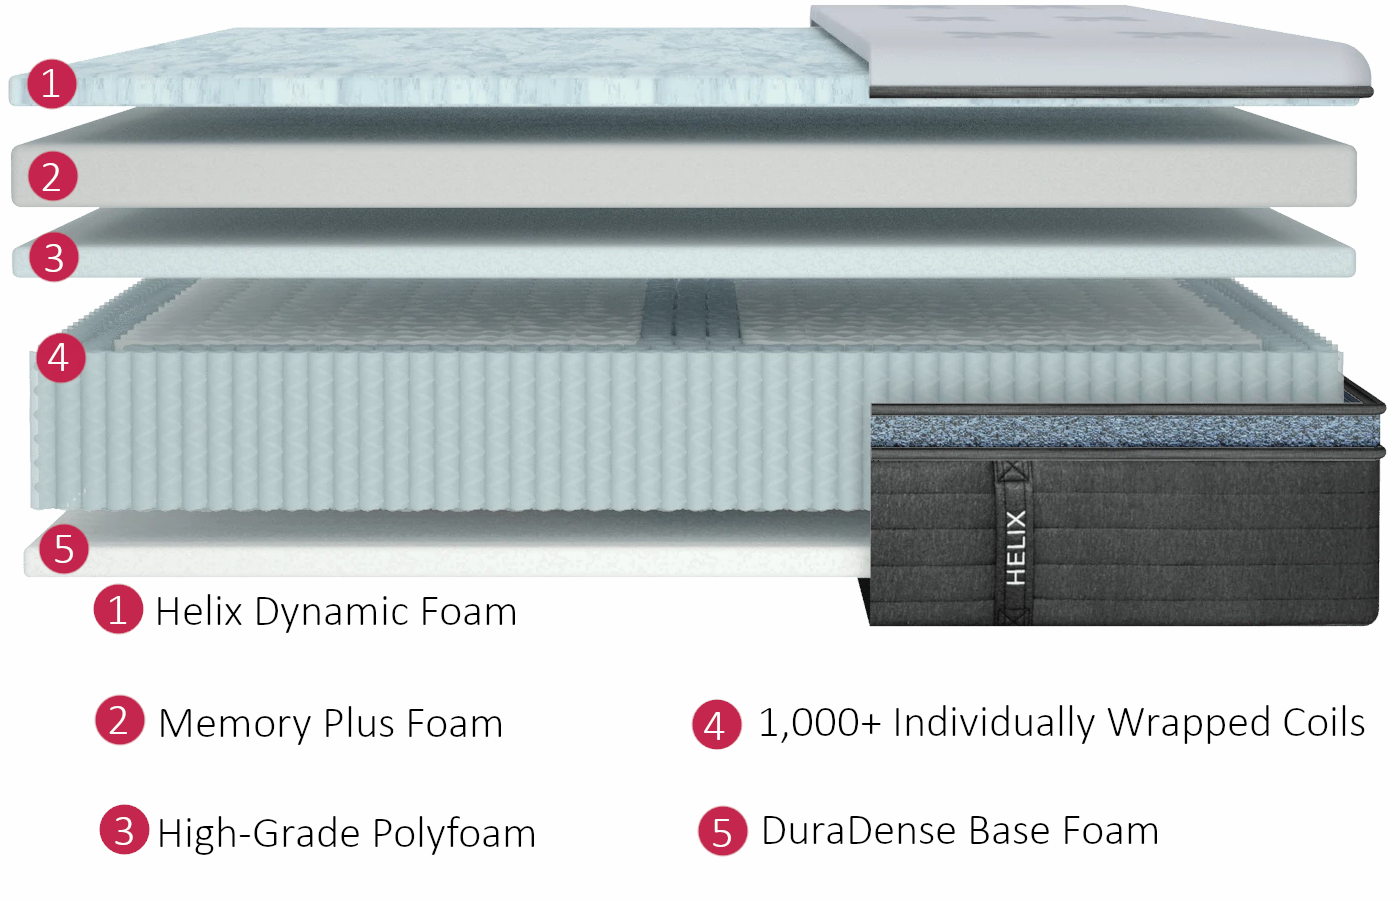 which mattress has better materials, winkbeds or helix luxe